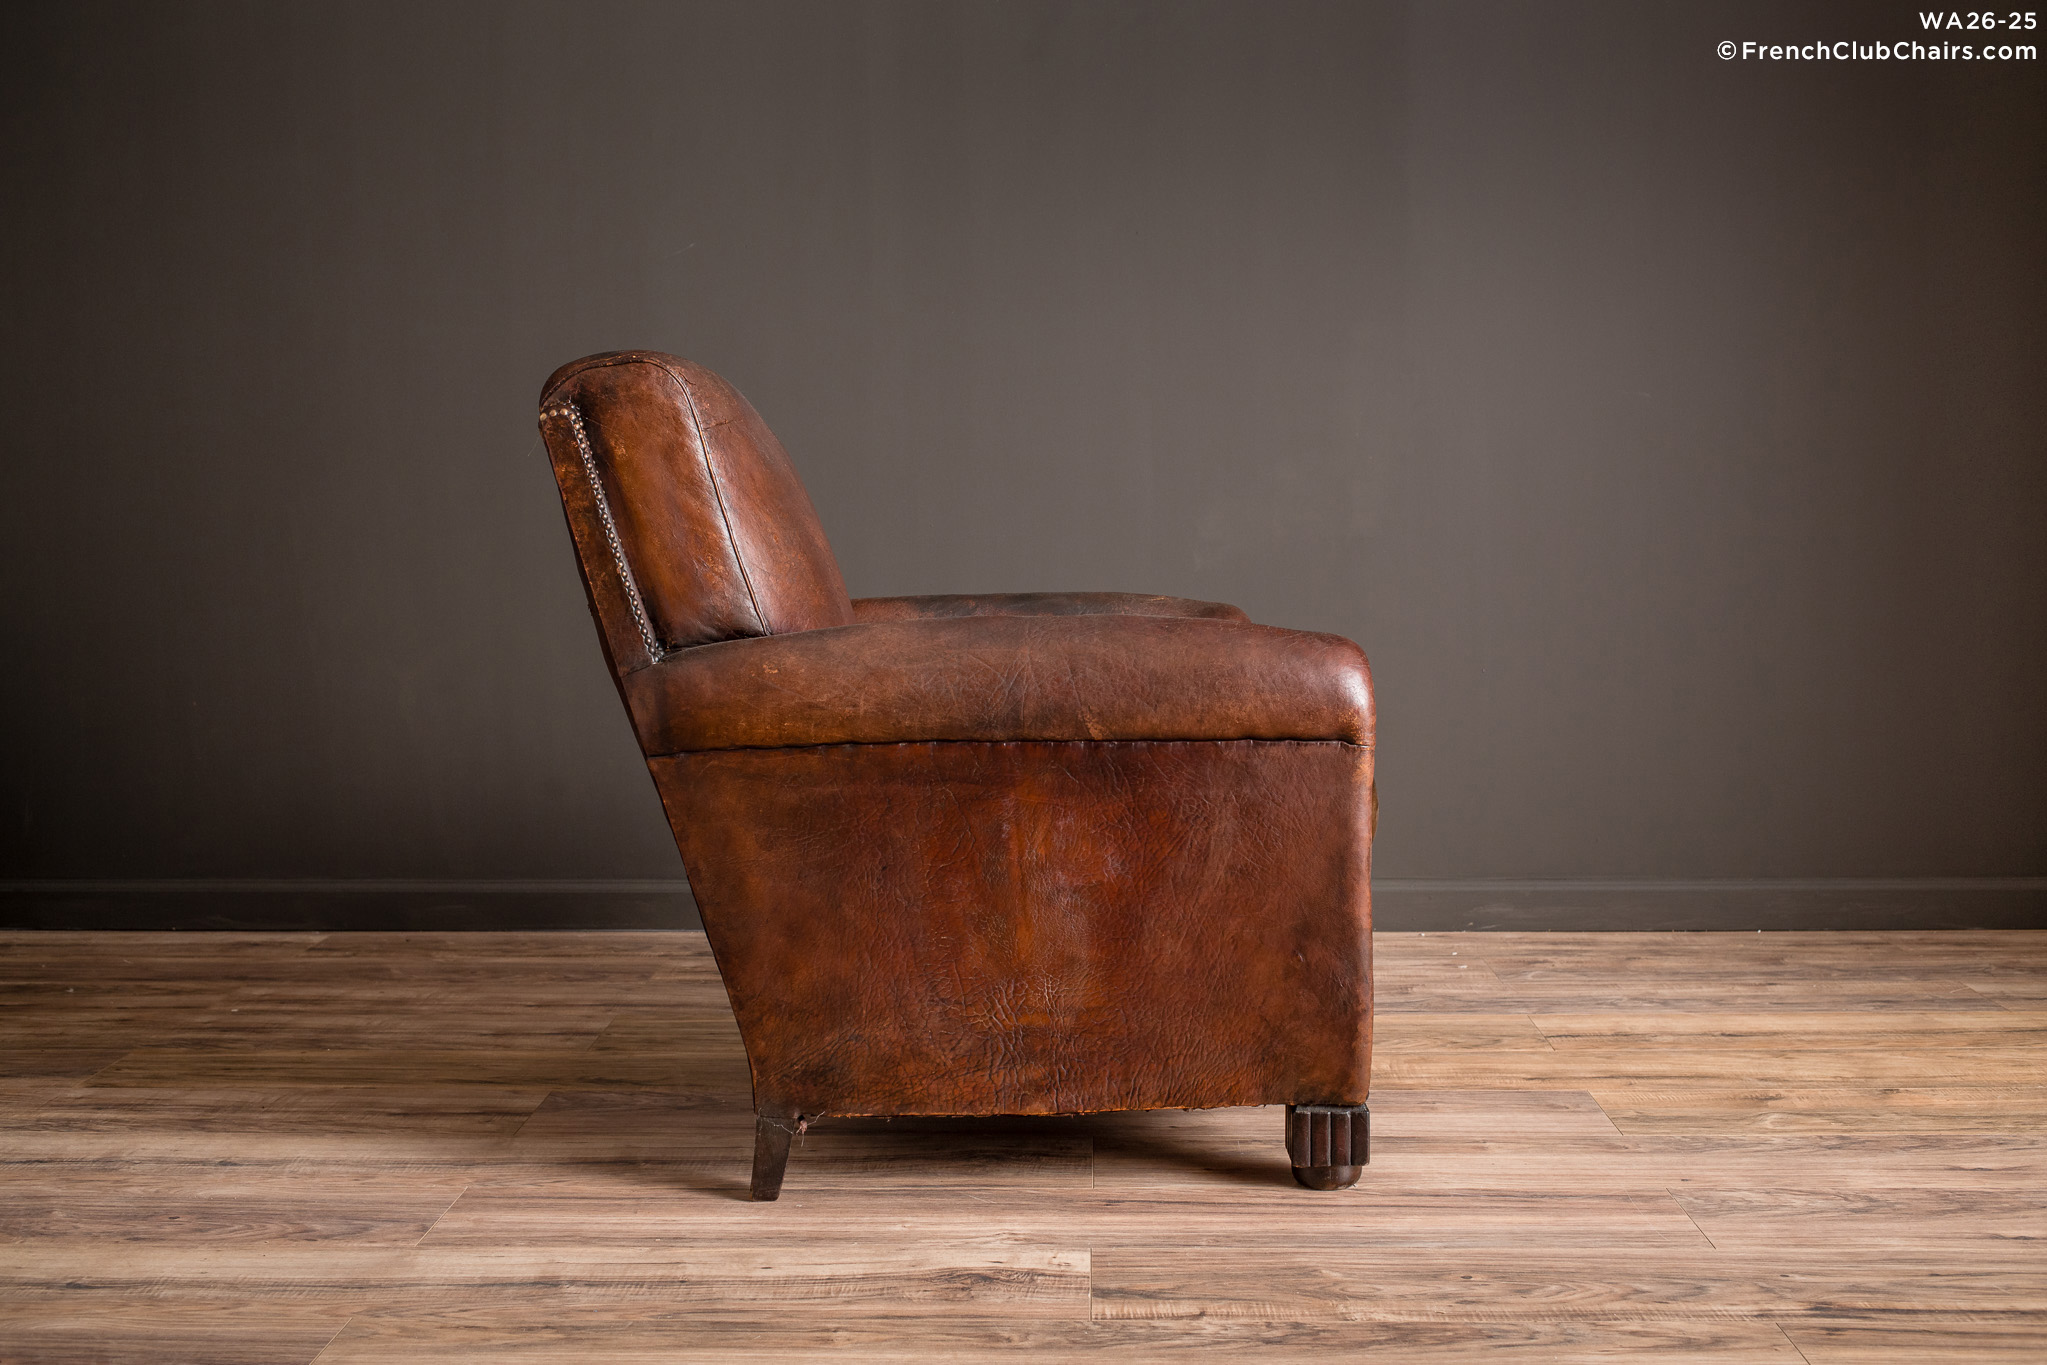 WA_26-25_Basque_Sweet_Dark_Nailed_Solo_R_3RT-v01-williams-antiks-leather-french-club-chair-wa_fcccom